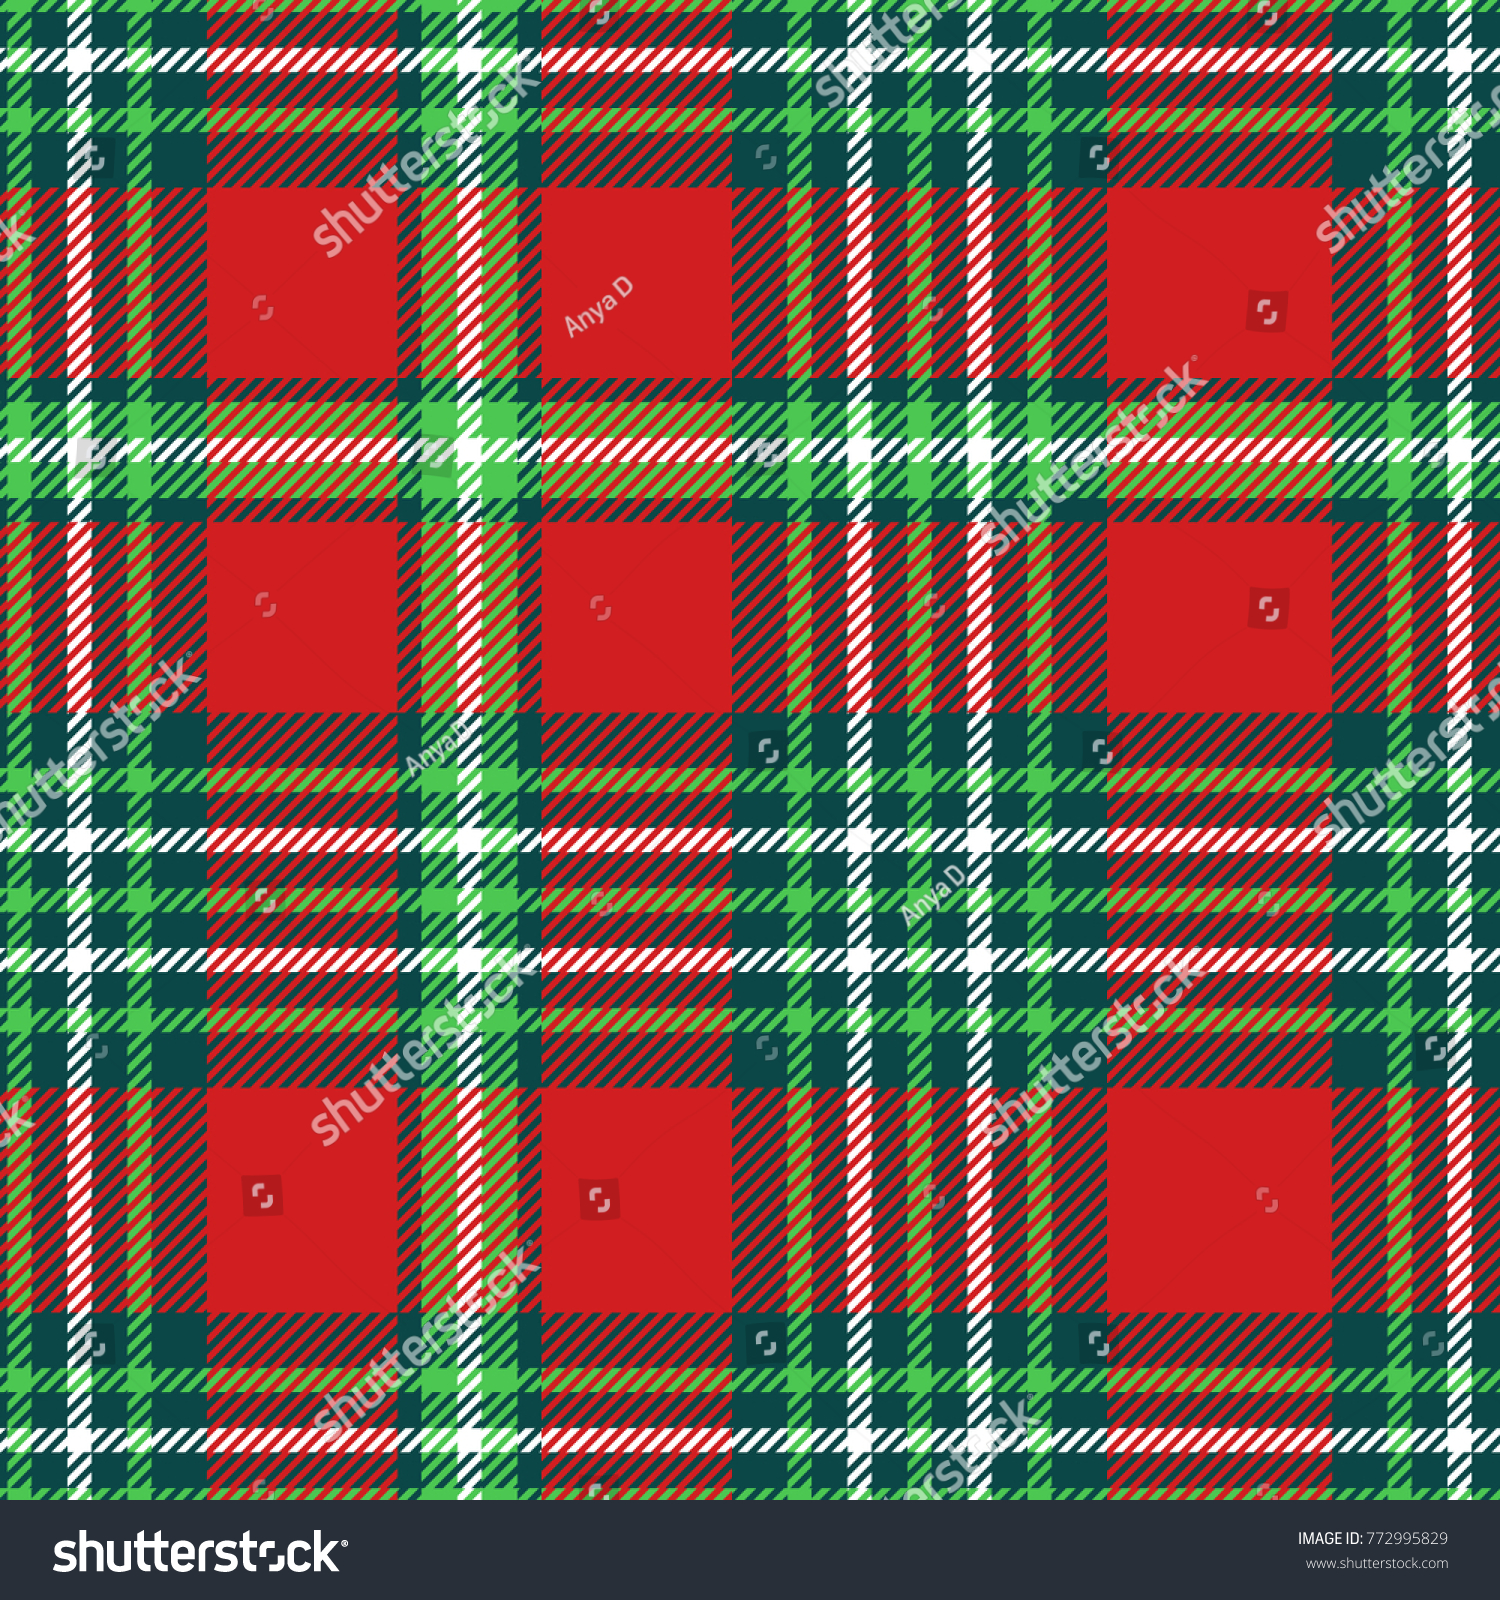 Seamless Plaid Pattern Checkered Fabric Texture Stock Vector ...